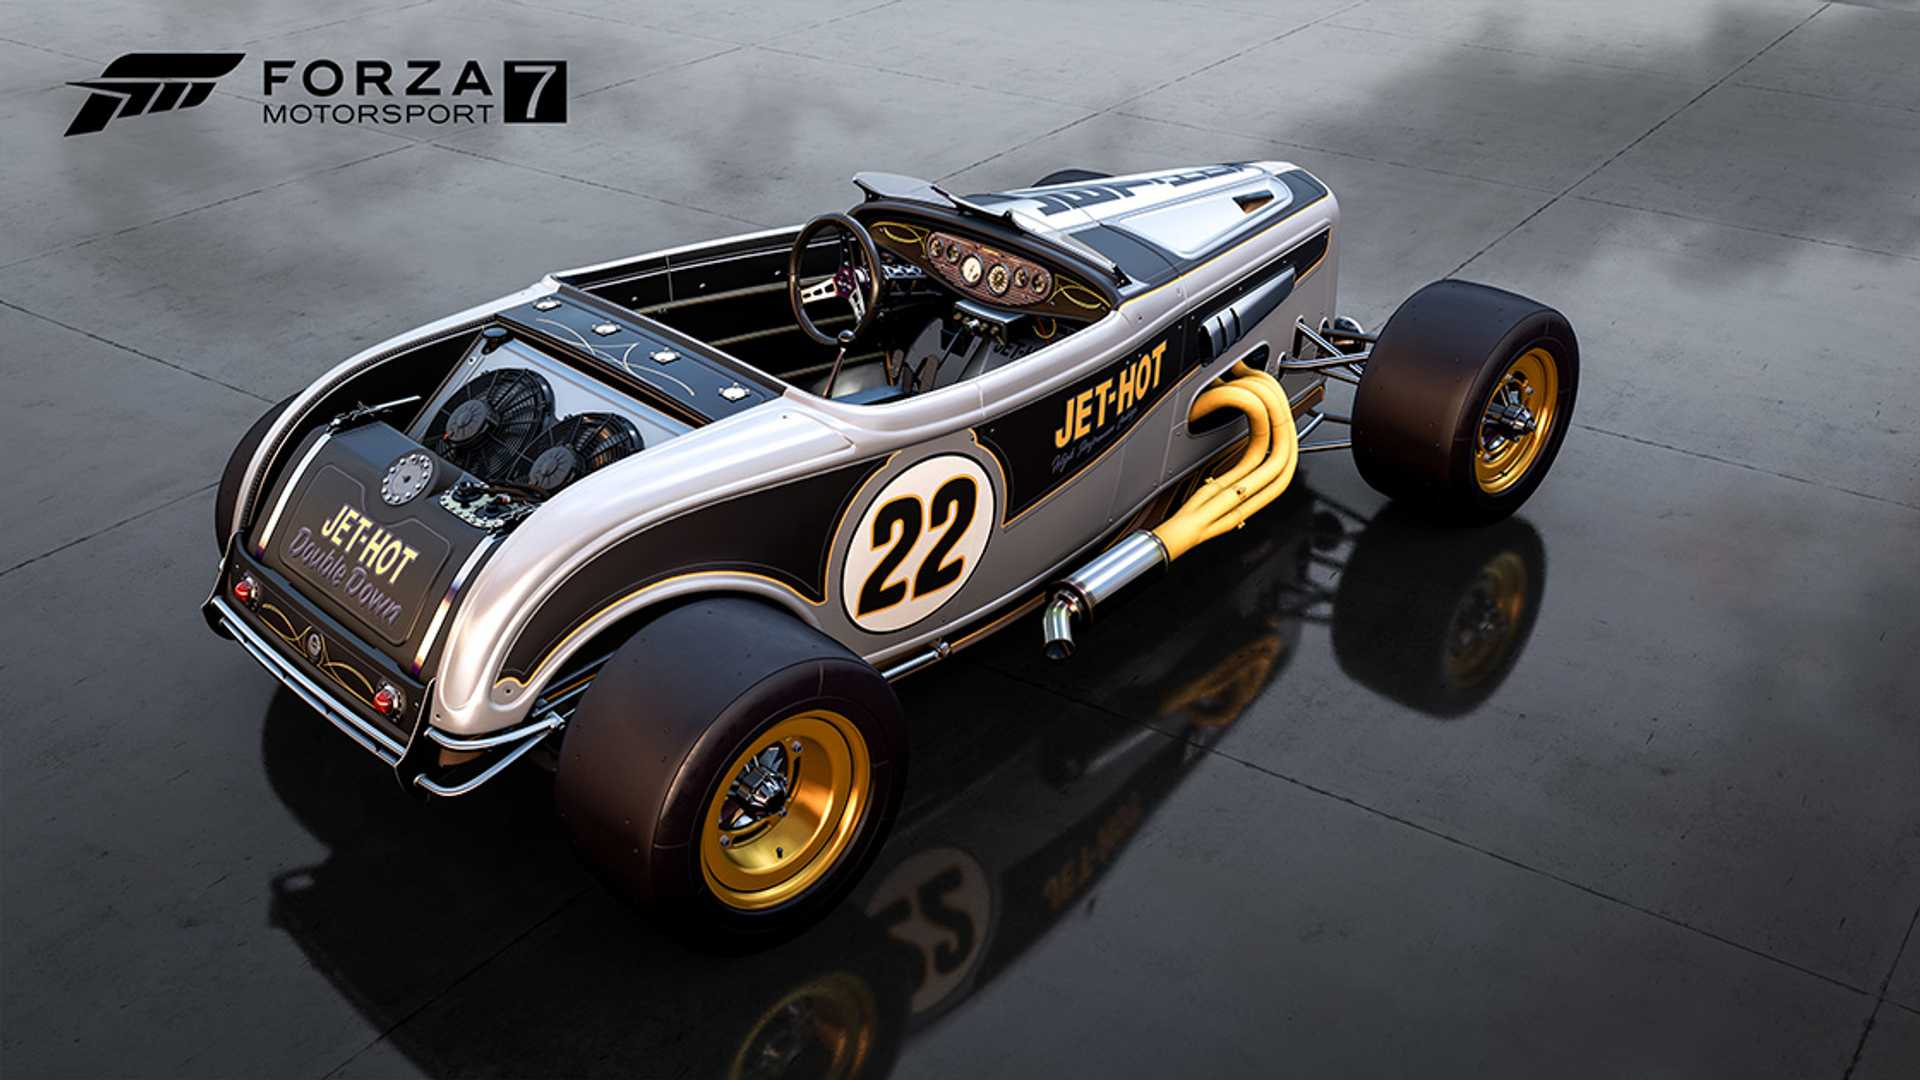 Forza 7 Announces Barrett-Jackson Car Pack With 7 Cool Rides